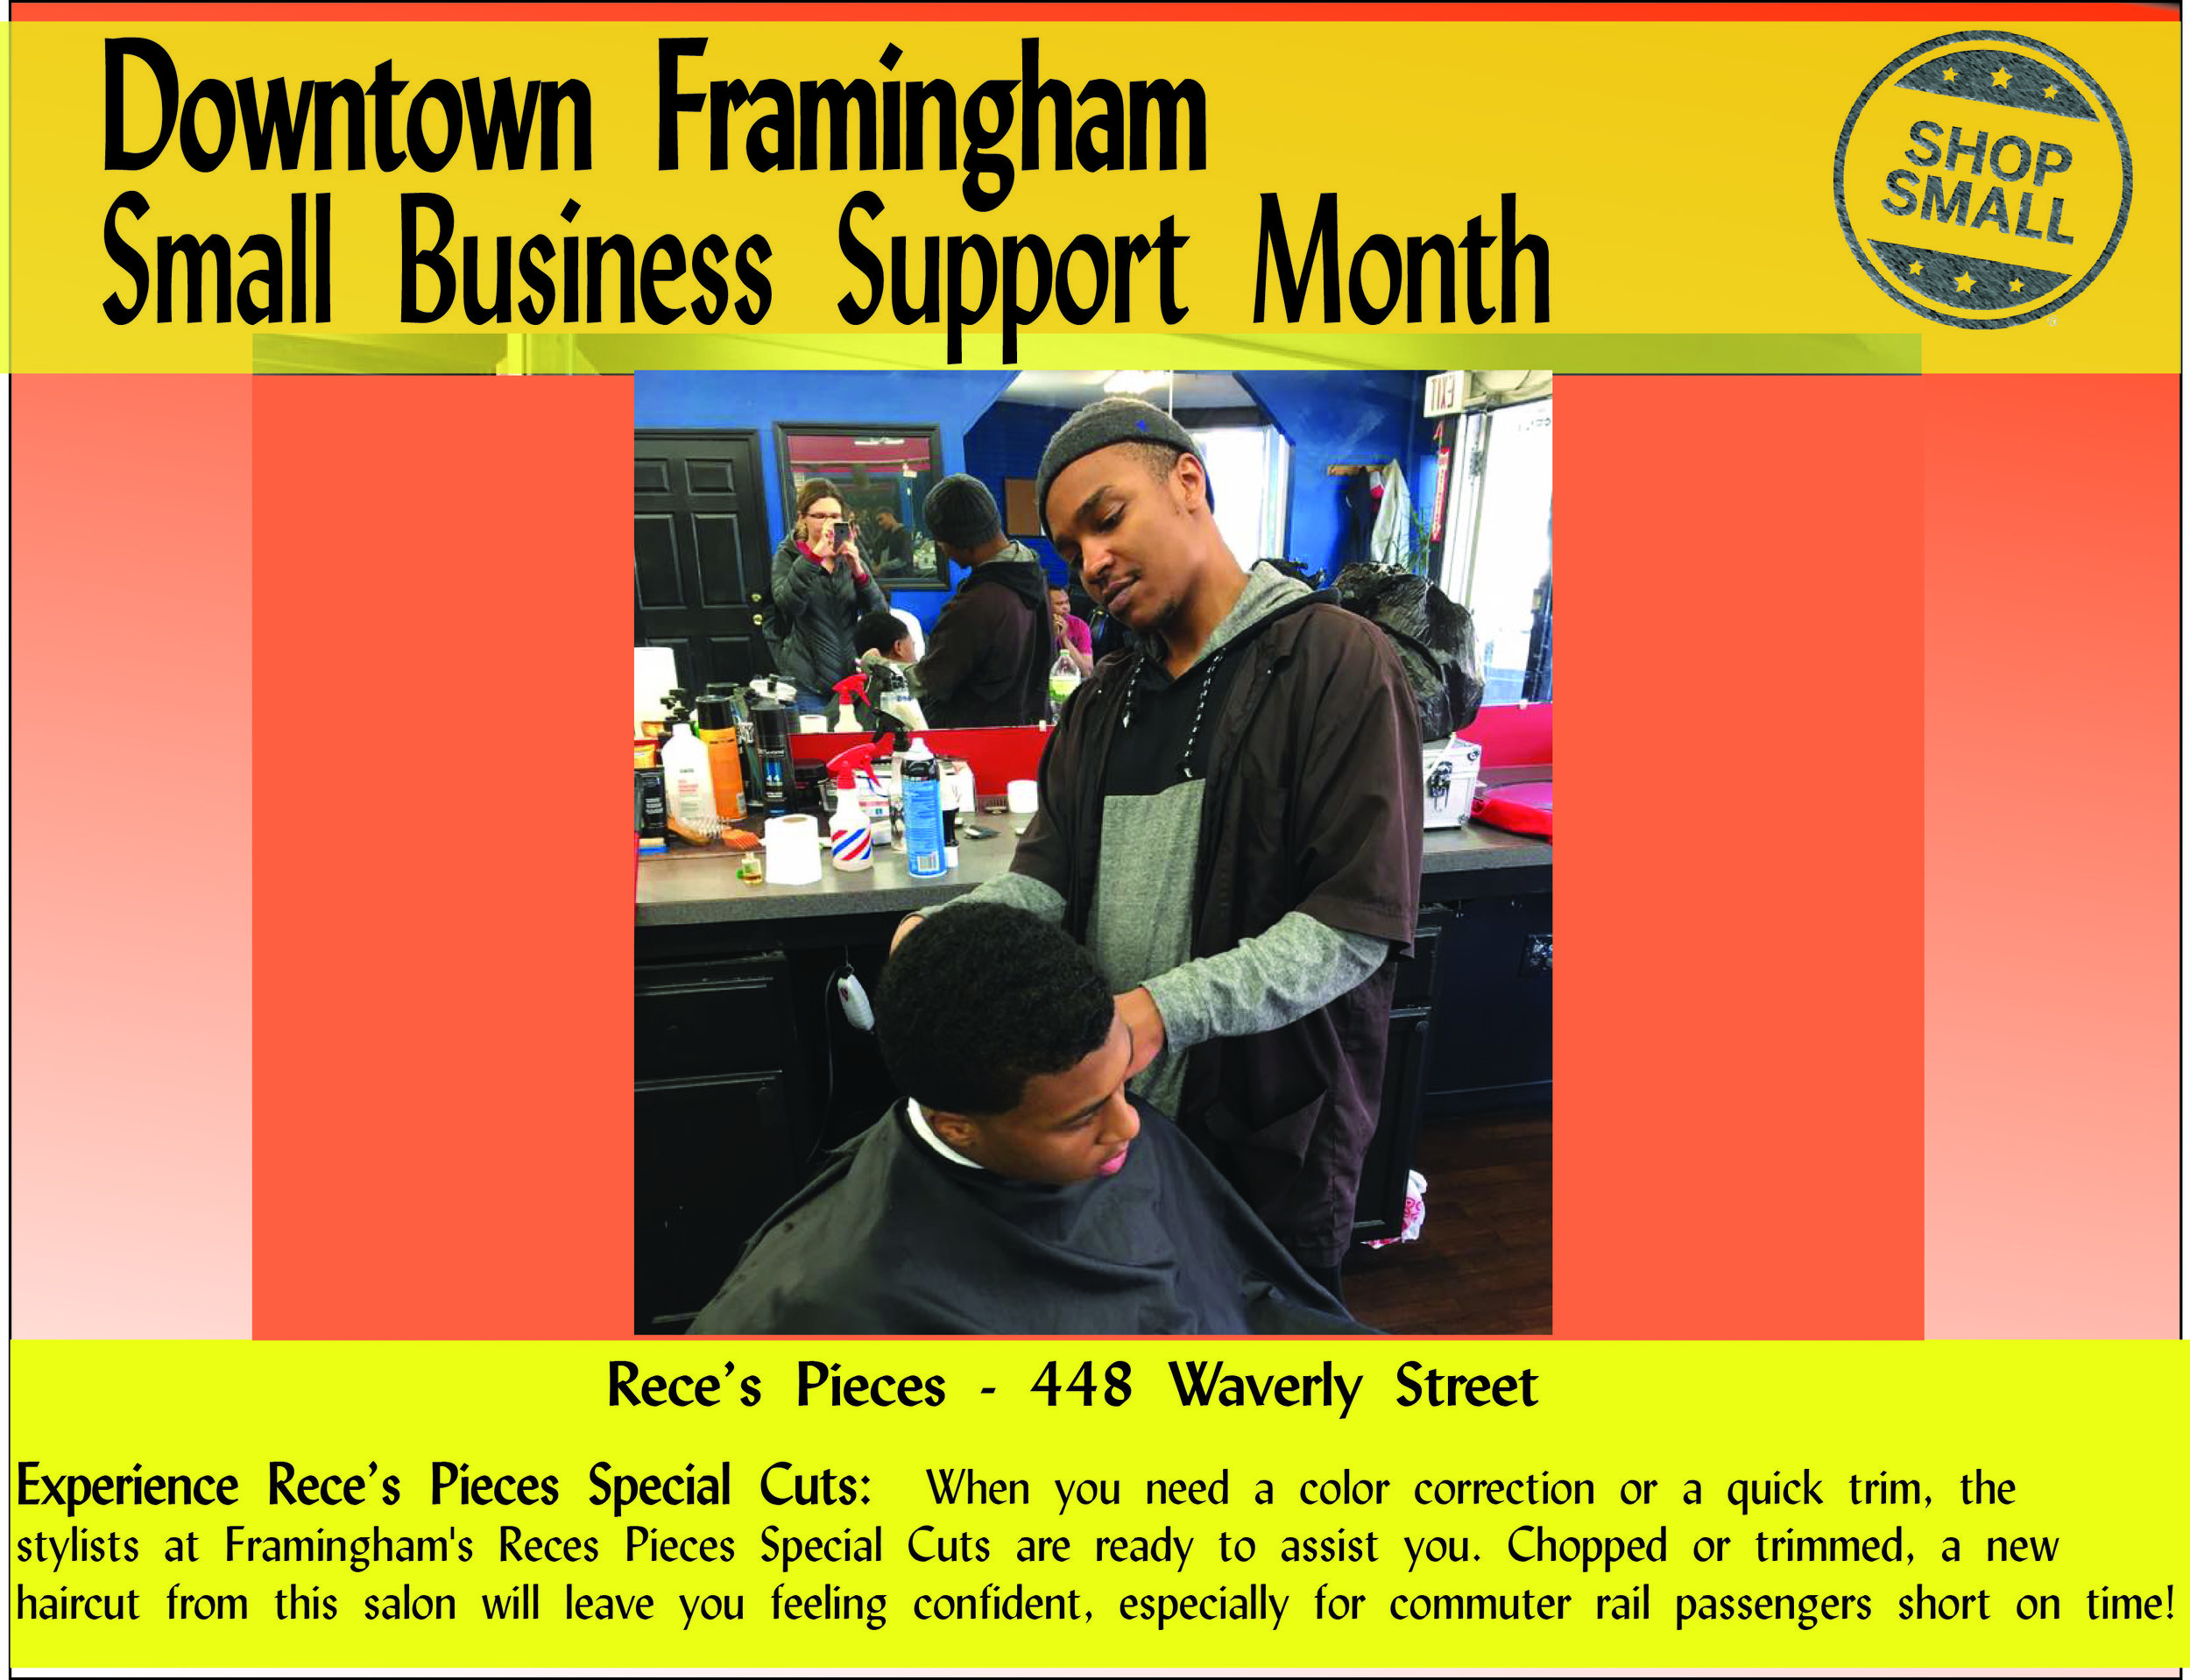 """It's Day 24 of Small Business Support Month! Reason #24: ENCOURAGE LOCAL PROSPERITY! """" A growing body of economic research shows that in an increasingly homogenized world, entrepreneurs and skilled workers are more likely to invest and settle in communities that preserve their one-of-a-kind businesses and distinctive character.""""  Rece's Pieces is extremely distinctive. This is the only African-American owned barbershop in Framingham, and it offers international styles! Stop by and say hello to Trevor!"""